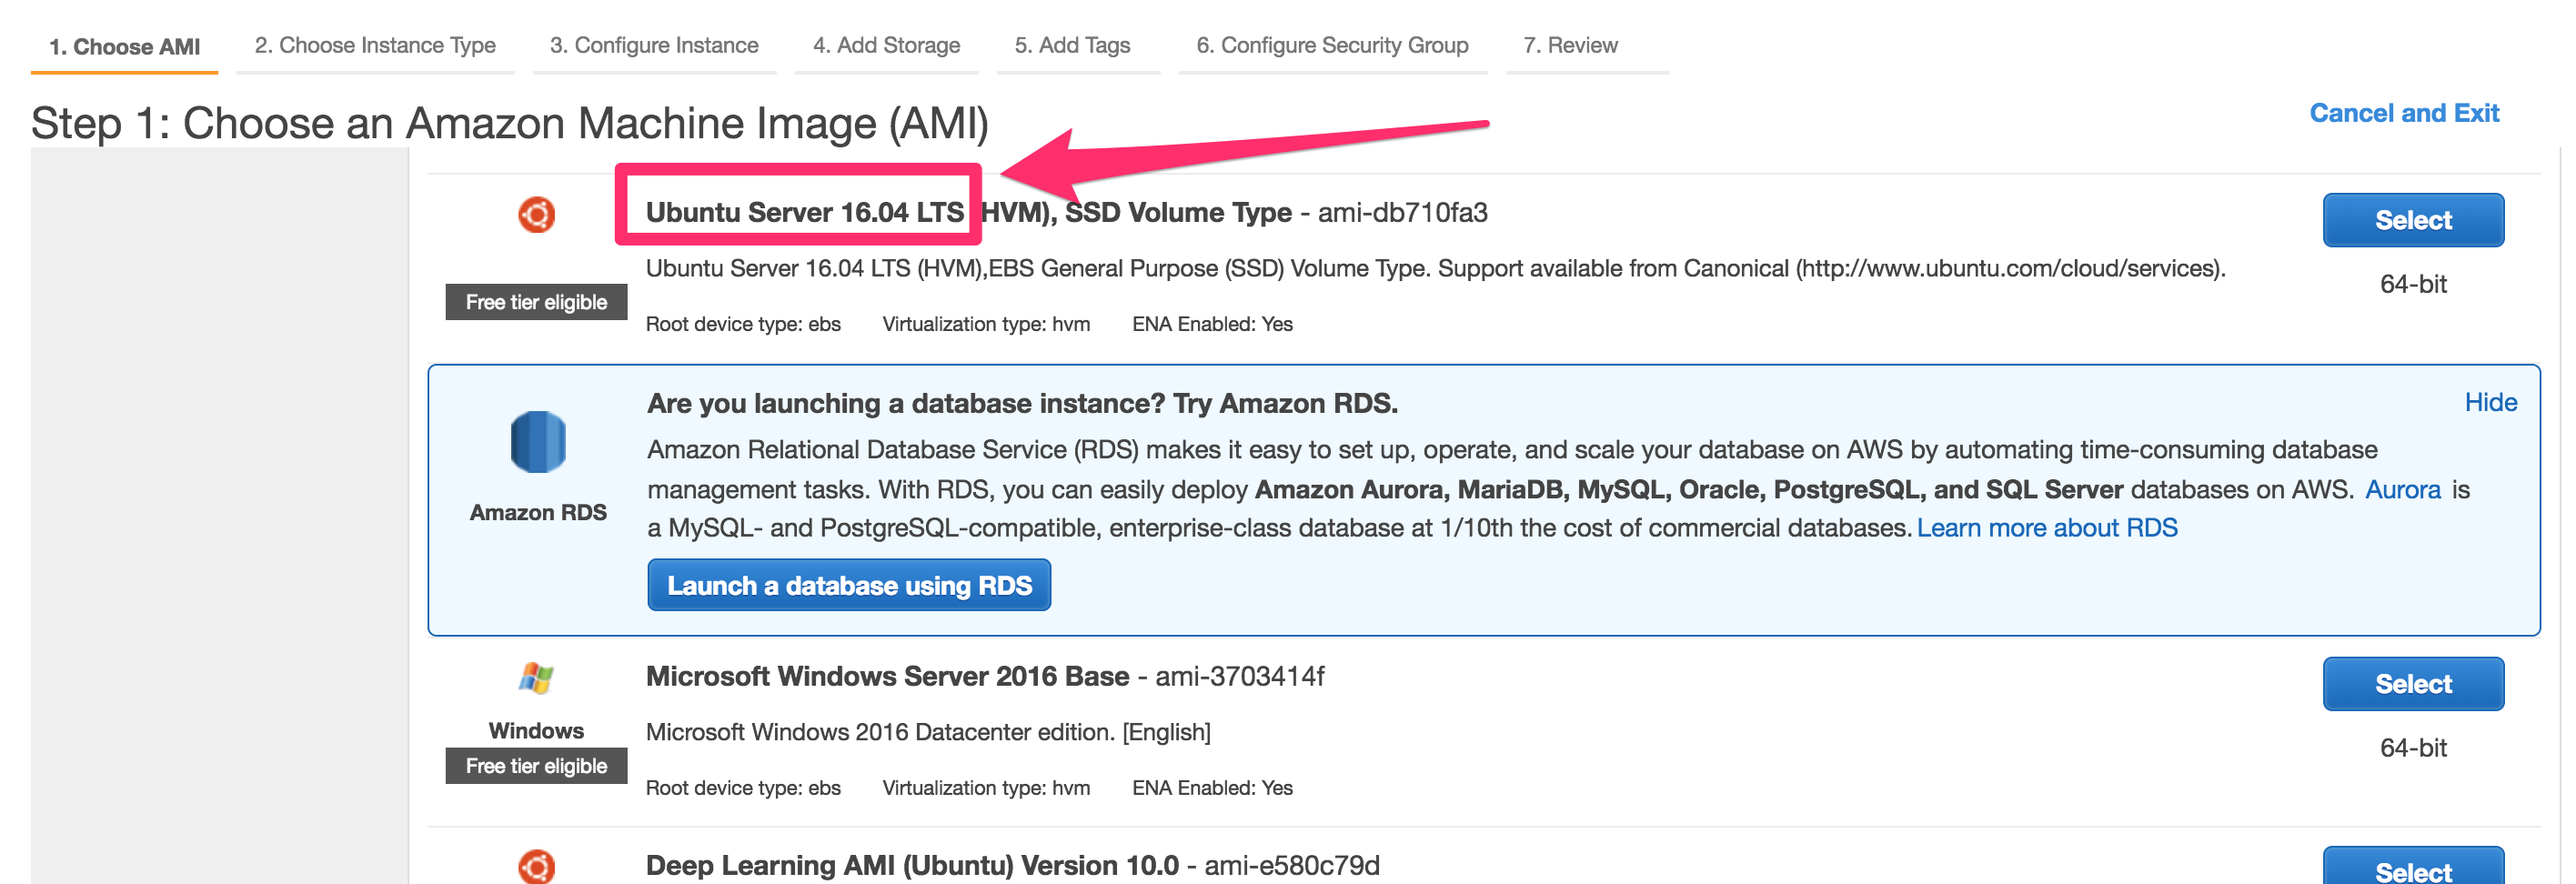 How to Get Ubuntu 18 04 on Amazon EC2 (Hint: it's ridiculously